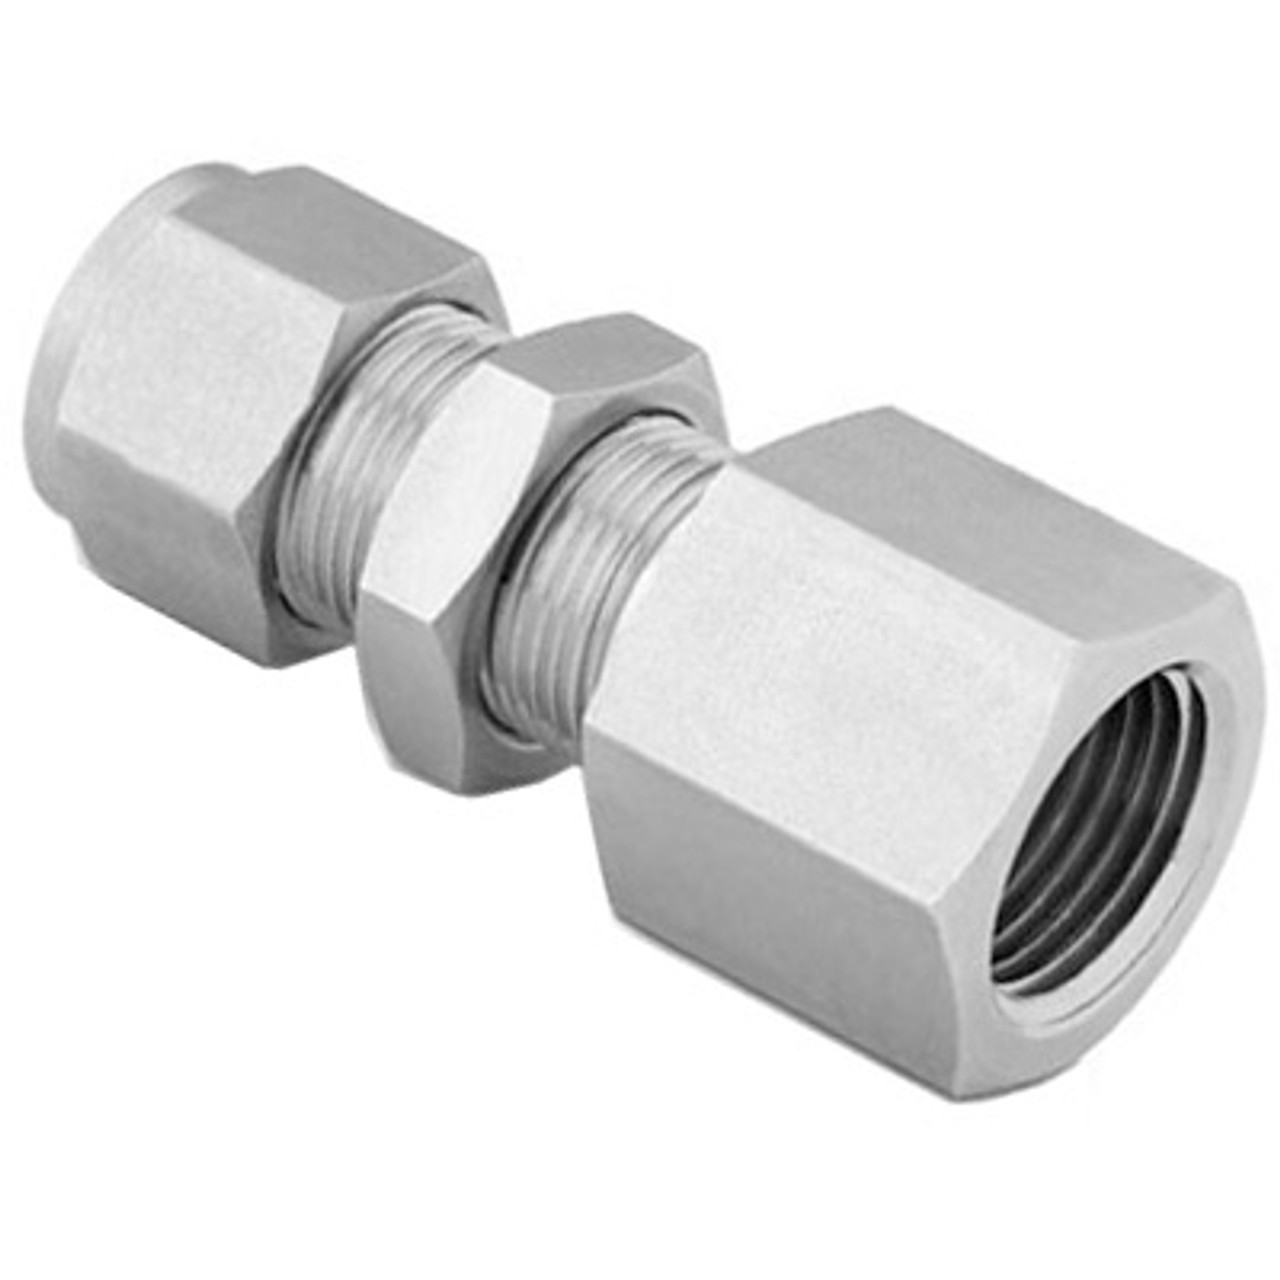 1 4 Npt >> Compression Fittings Stainless Steel 1 4 Tube X 1 4 Npt Bulkhead